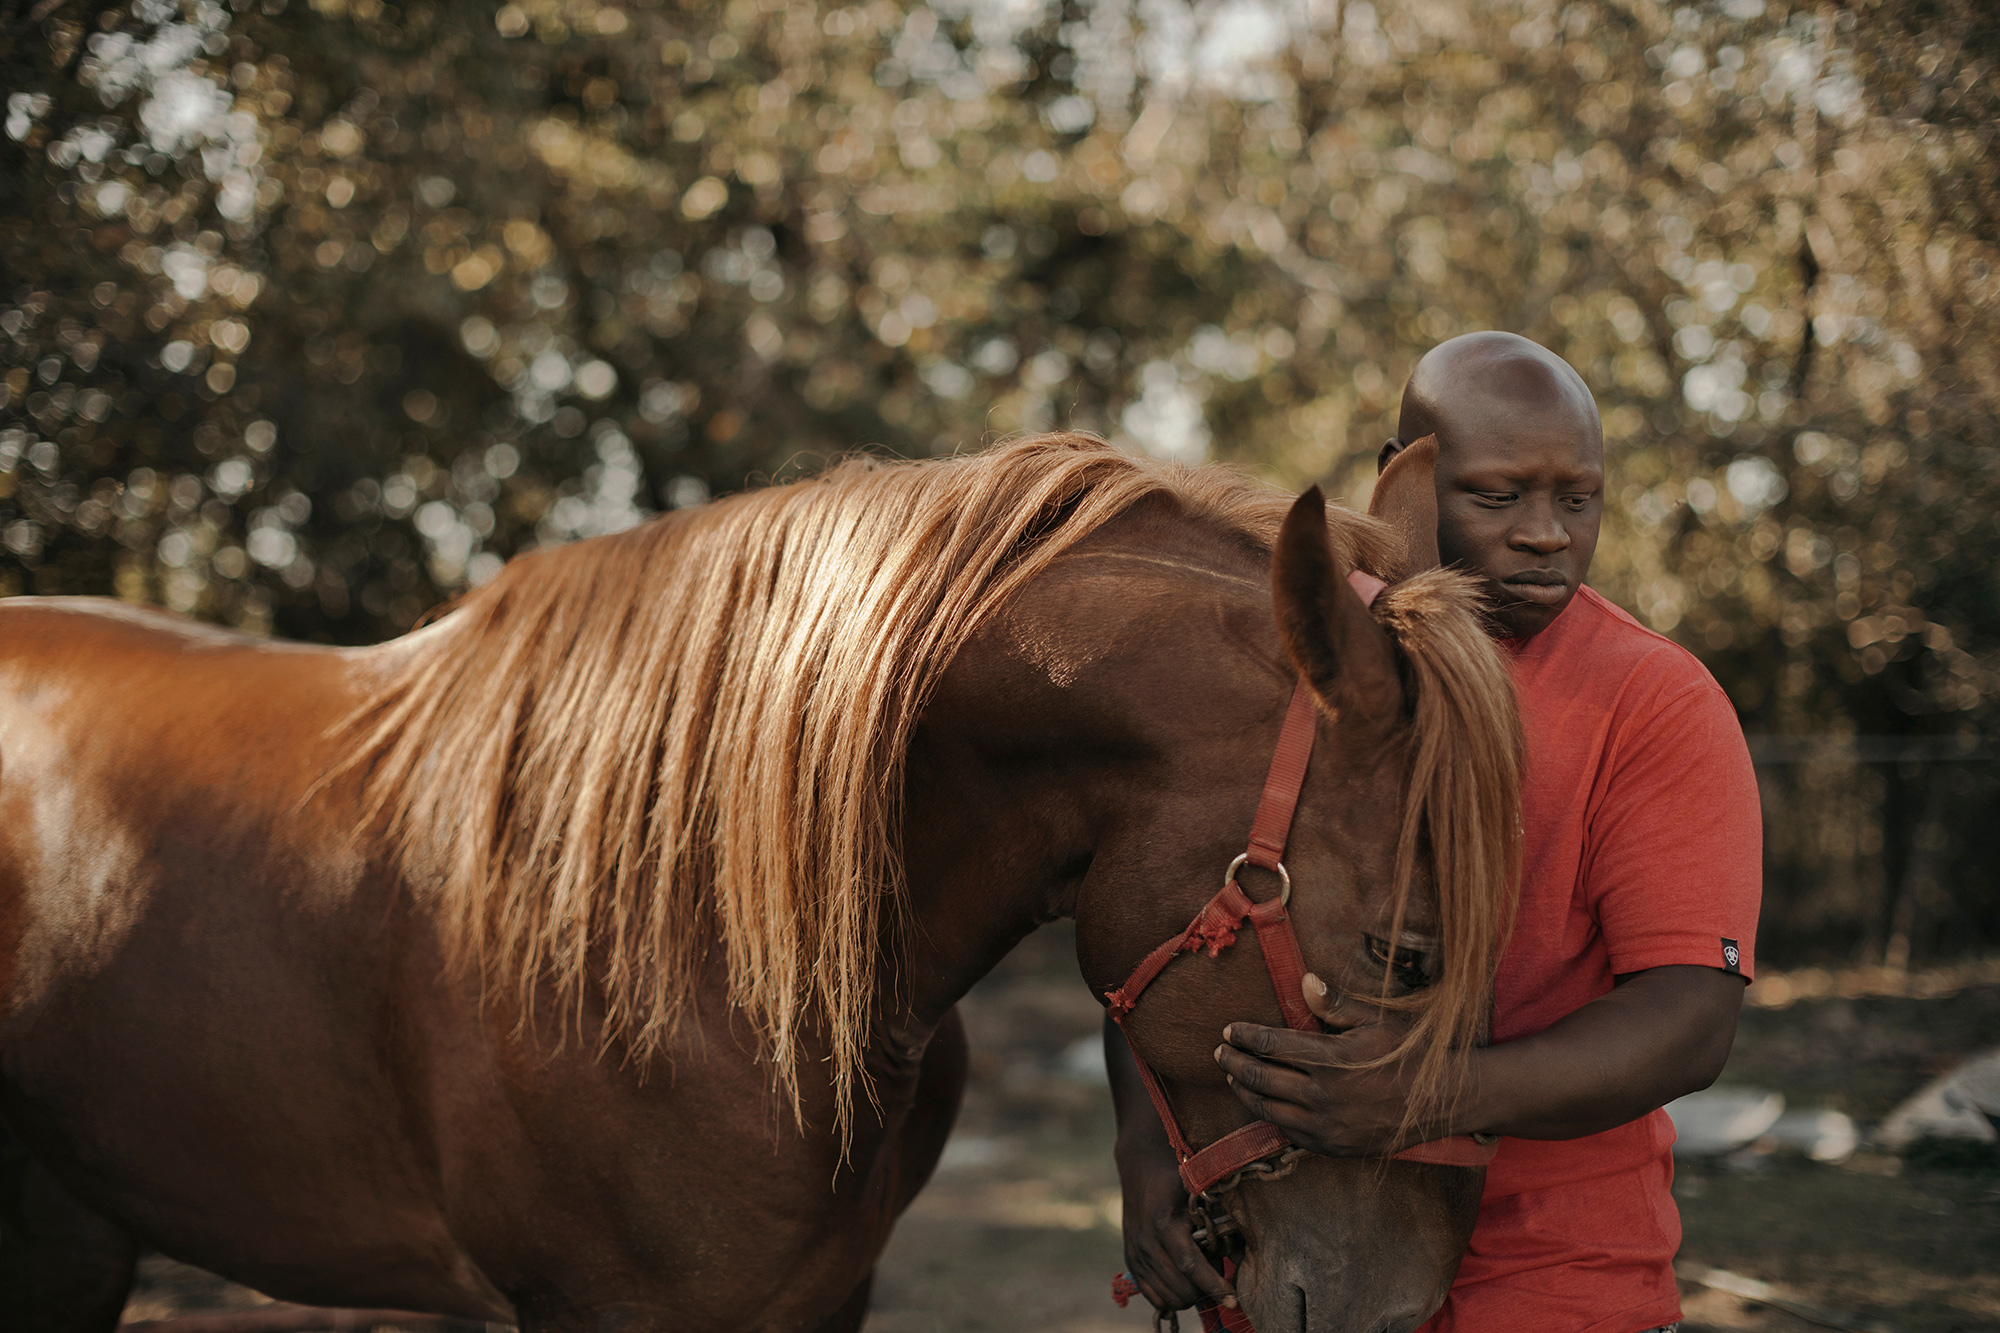 Baldenna Tha King, Houston zydeco musician and stable master, the trail-riding rapper, photographed with one of his horses at his stables in Houston, photographed by Todd Spoth.